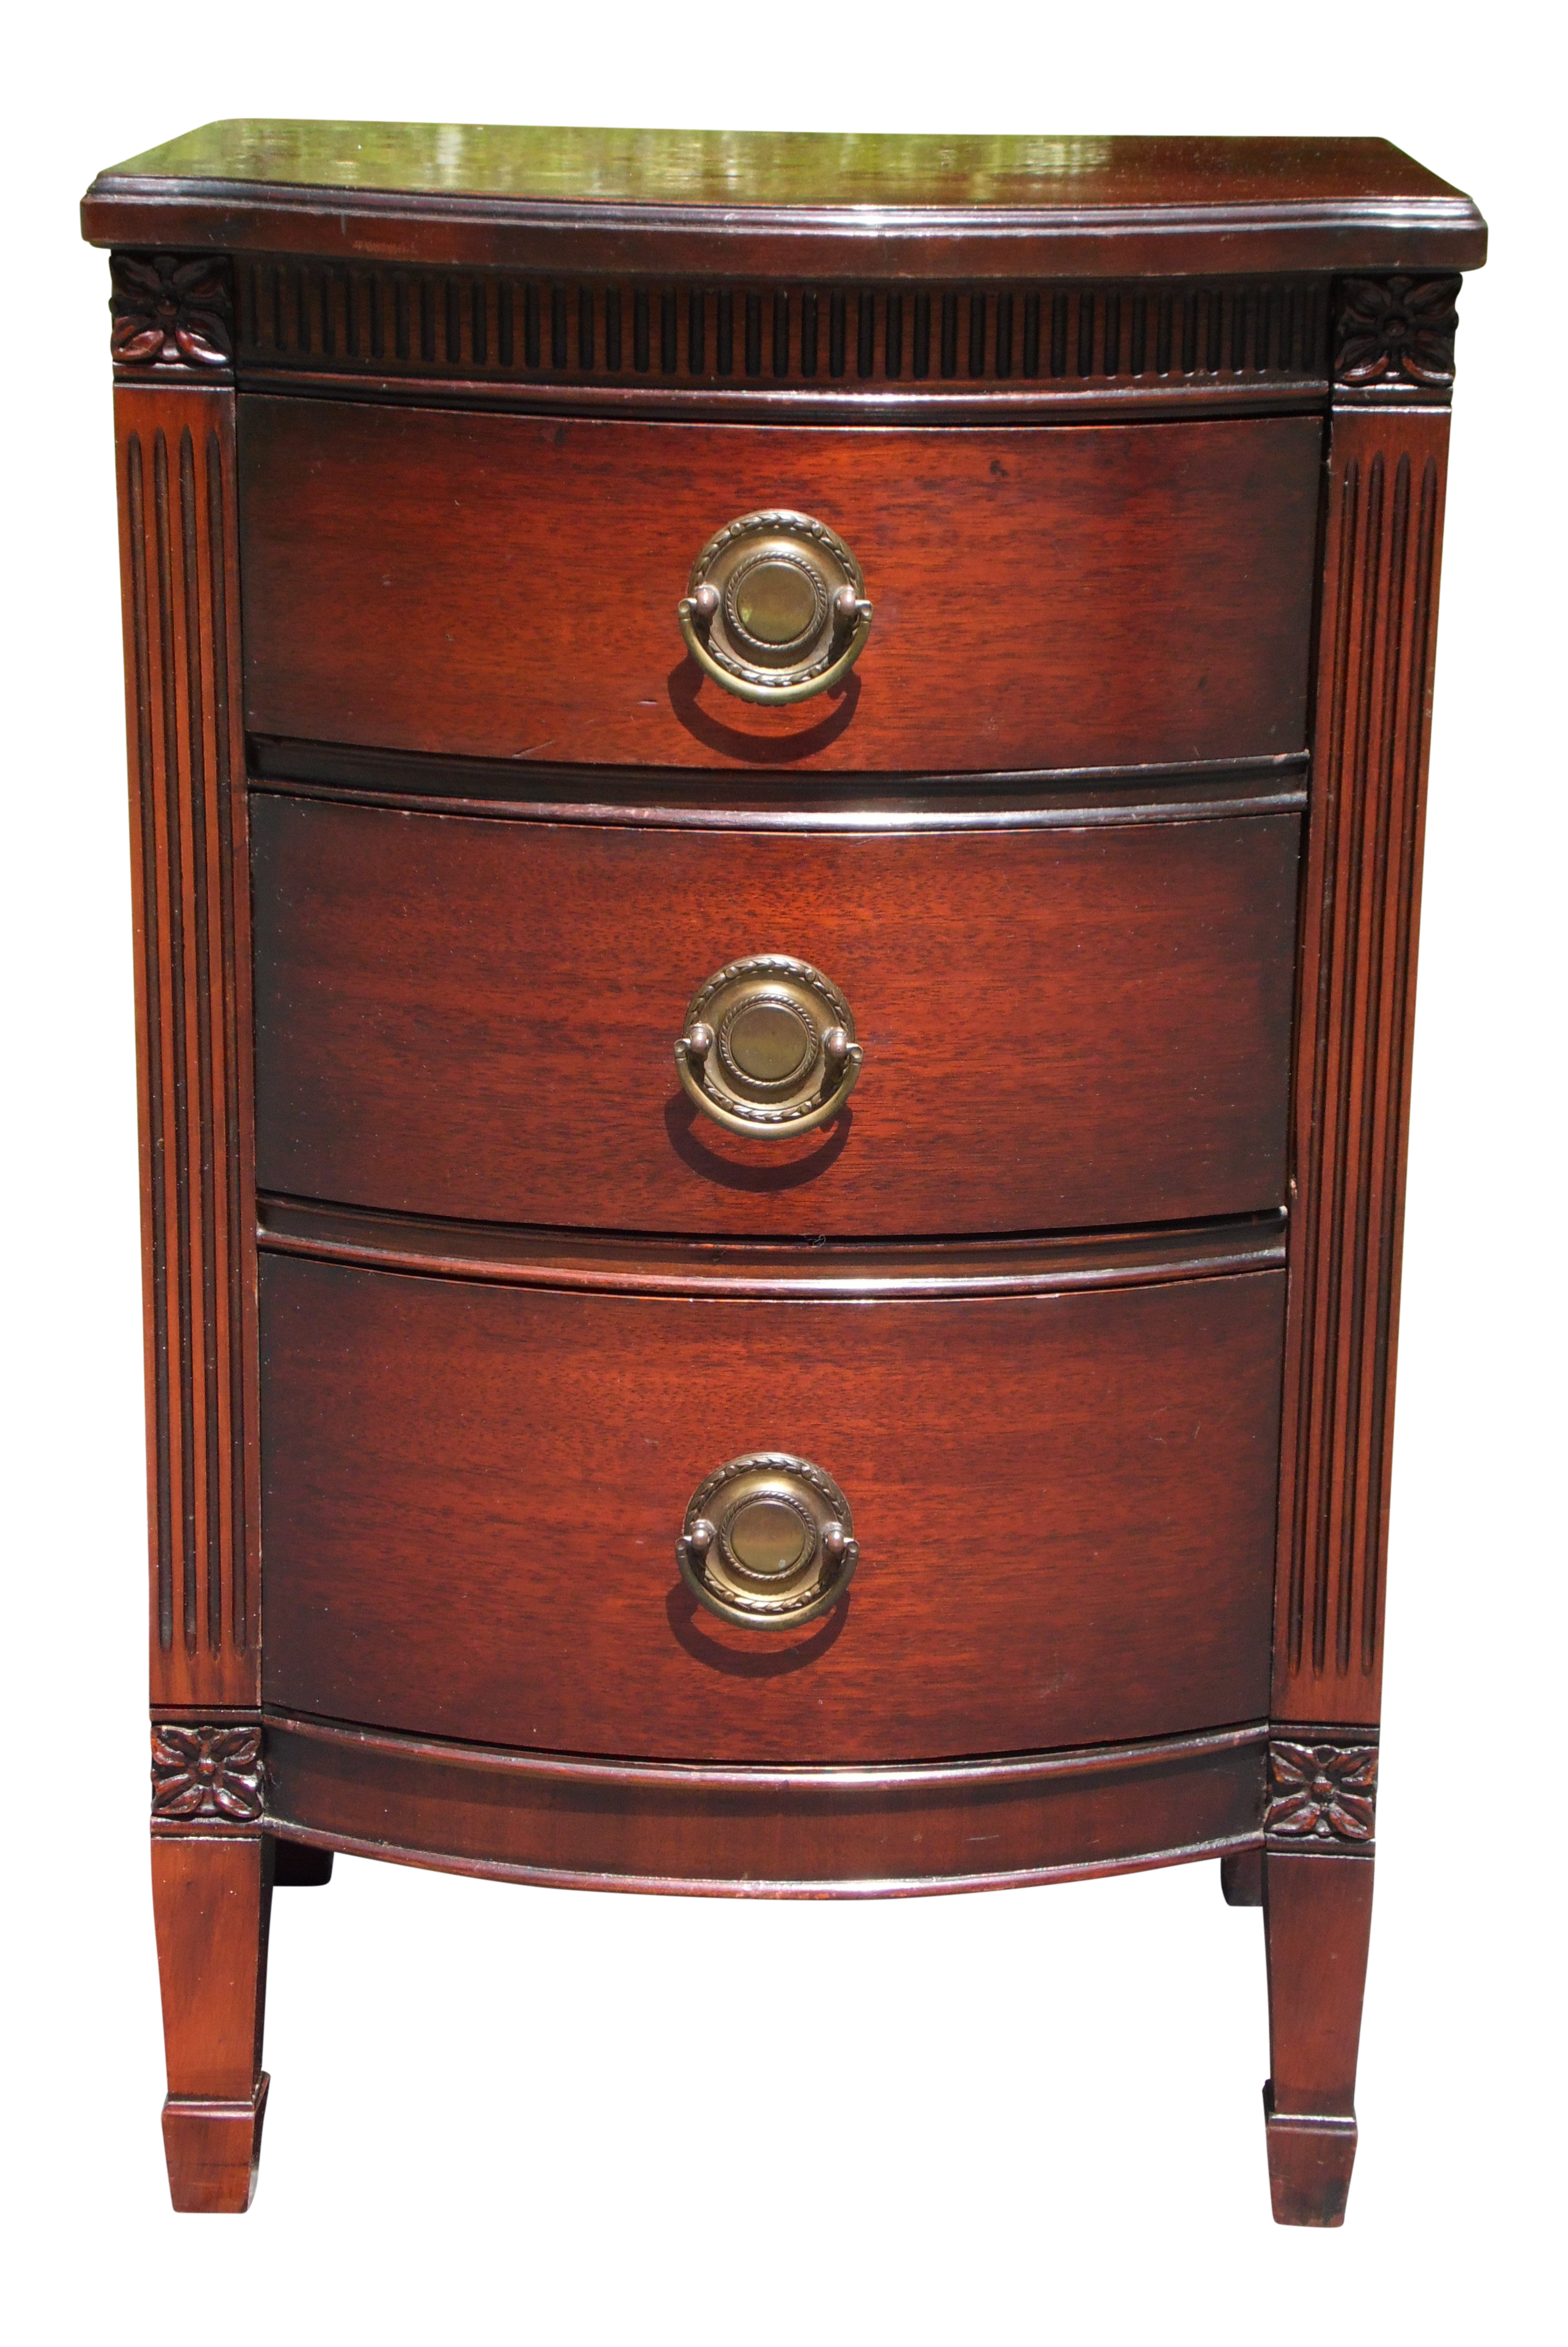 Vintage Federal Style Mahogany Bow Front Nightstand End Table Chest Of Drawers On Chairish Com Chest Of Drawers Drawers End Tables